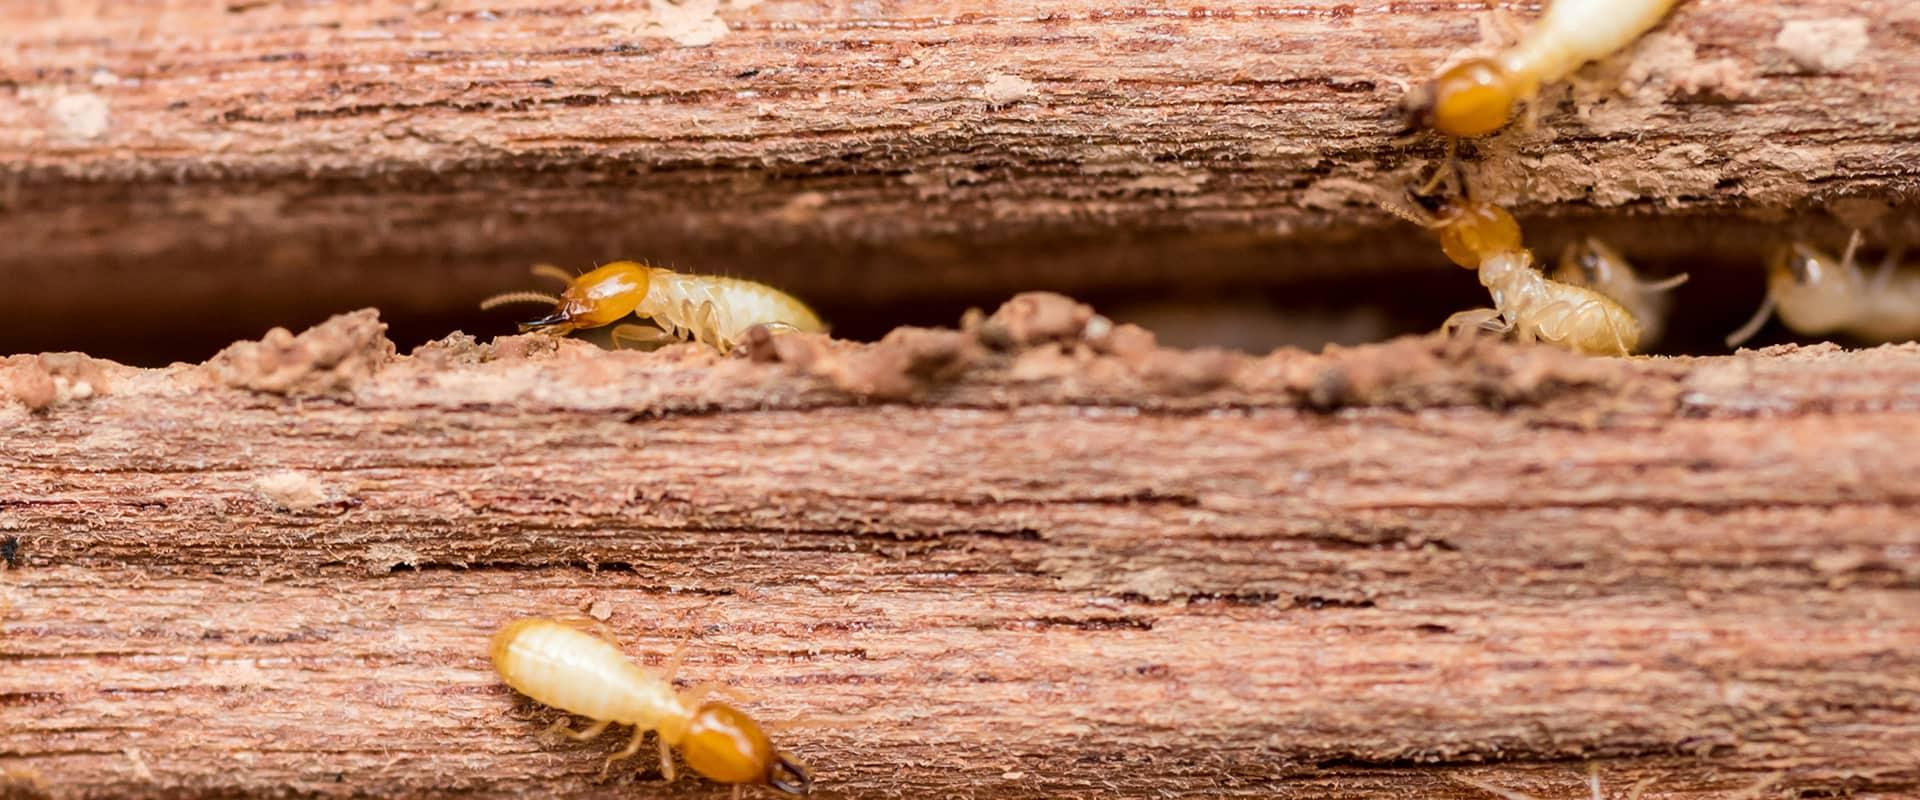 termites tunneling through wood at a home in port huron michigan